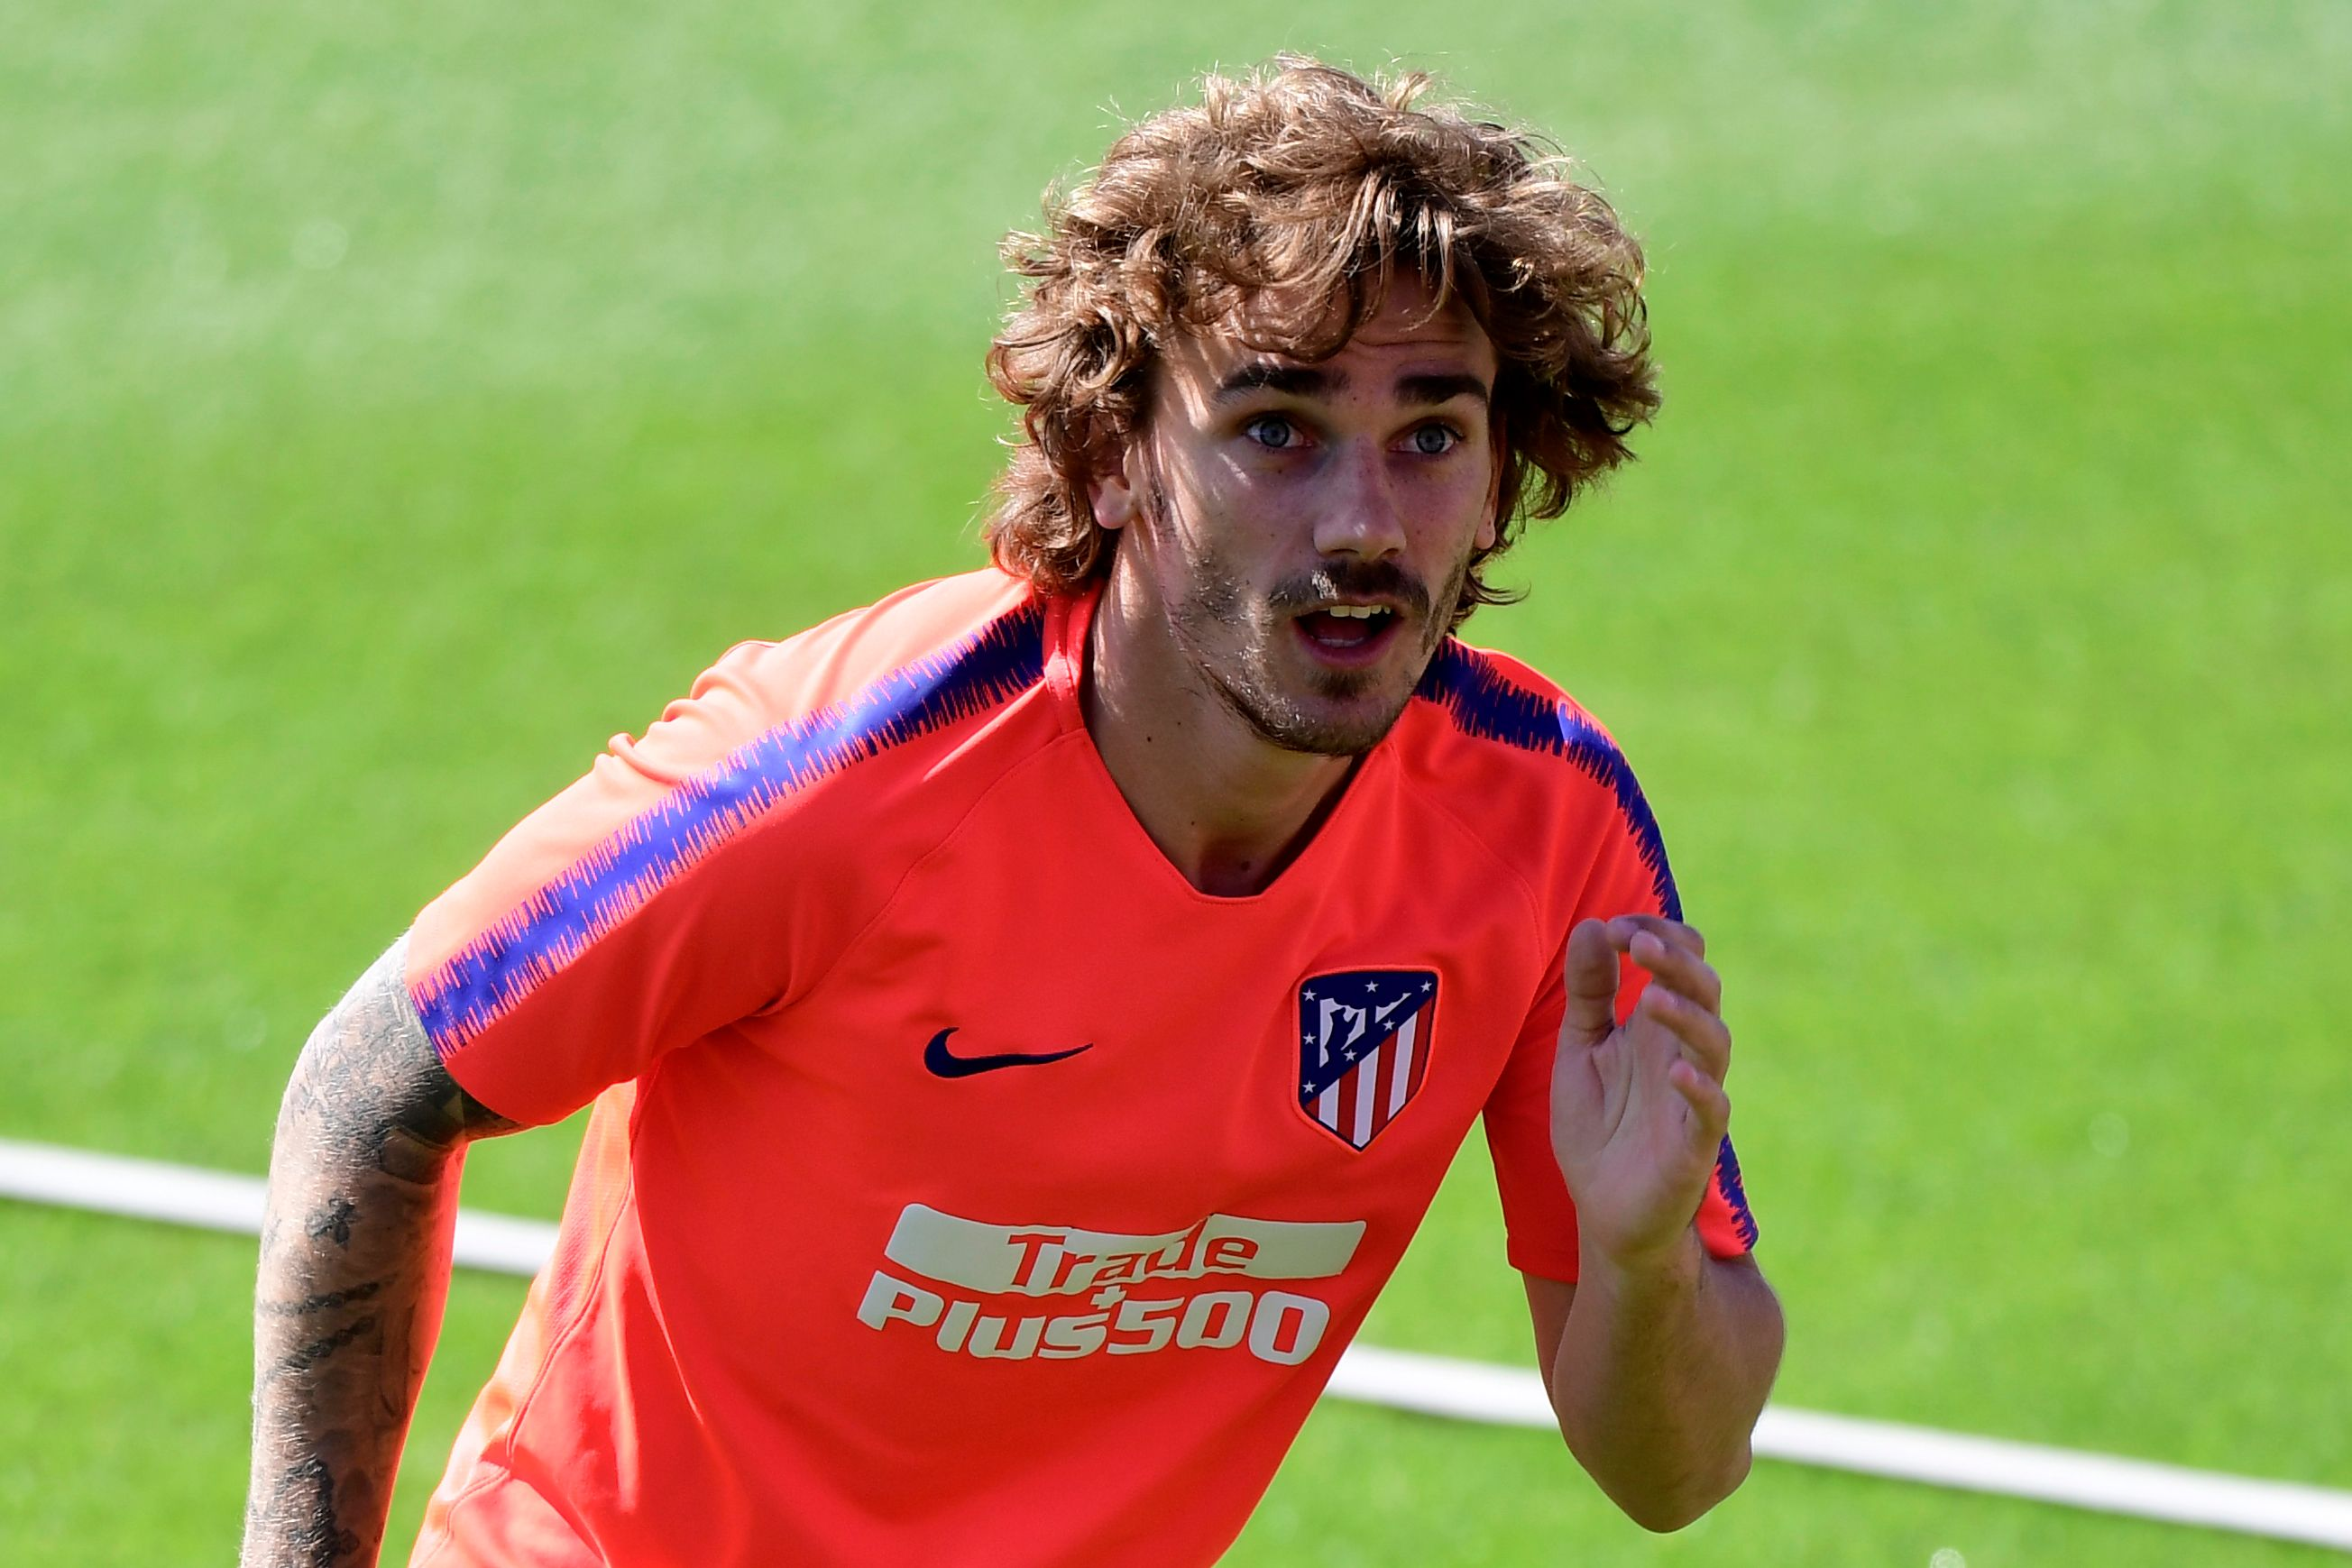 Atletico Madrid's French forward Antoine Griezmann attends a training session at the club's training ground in Majadahonda outside of Madrid on May 16, 2019. - Griezmann's decision to leave Atletico Madrid has plunged the club into chaos and fired the starting gun for a summer scramble among Europe's elite. (Photo by JAVIER SORIANO / AFP)